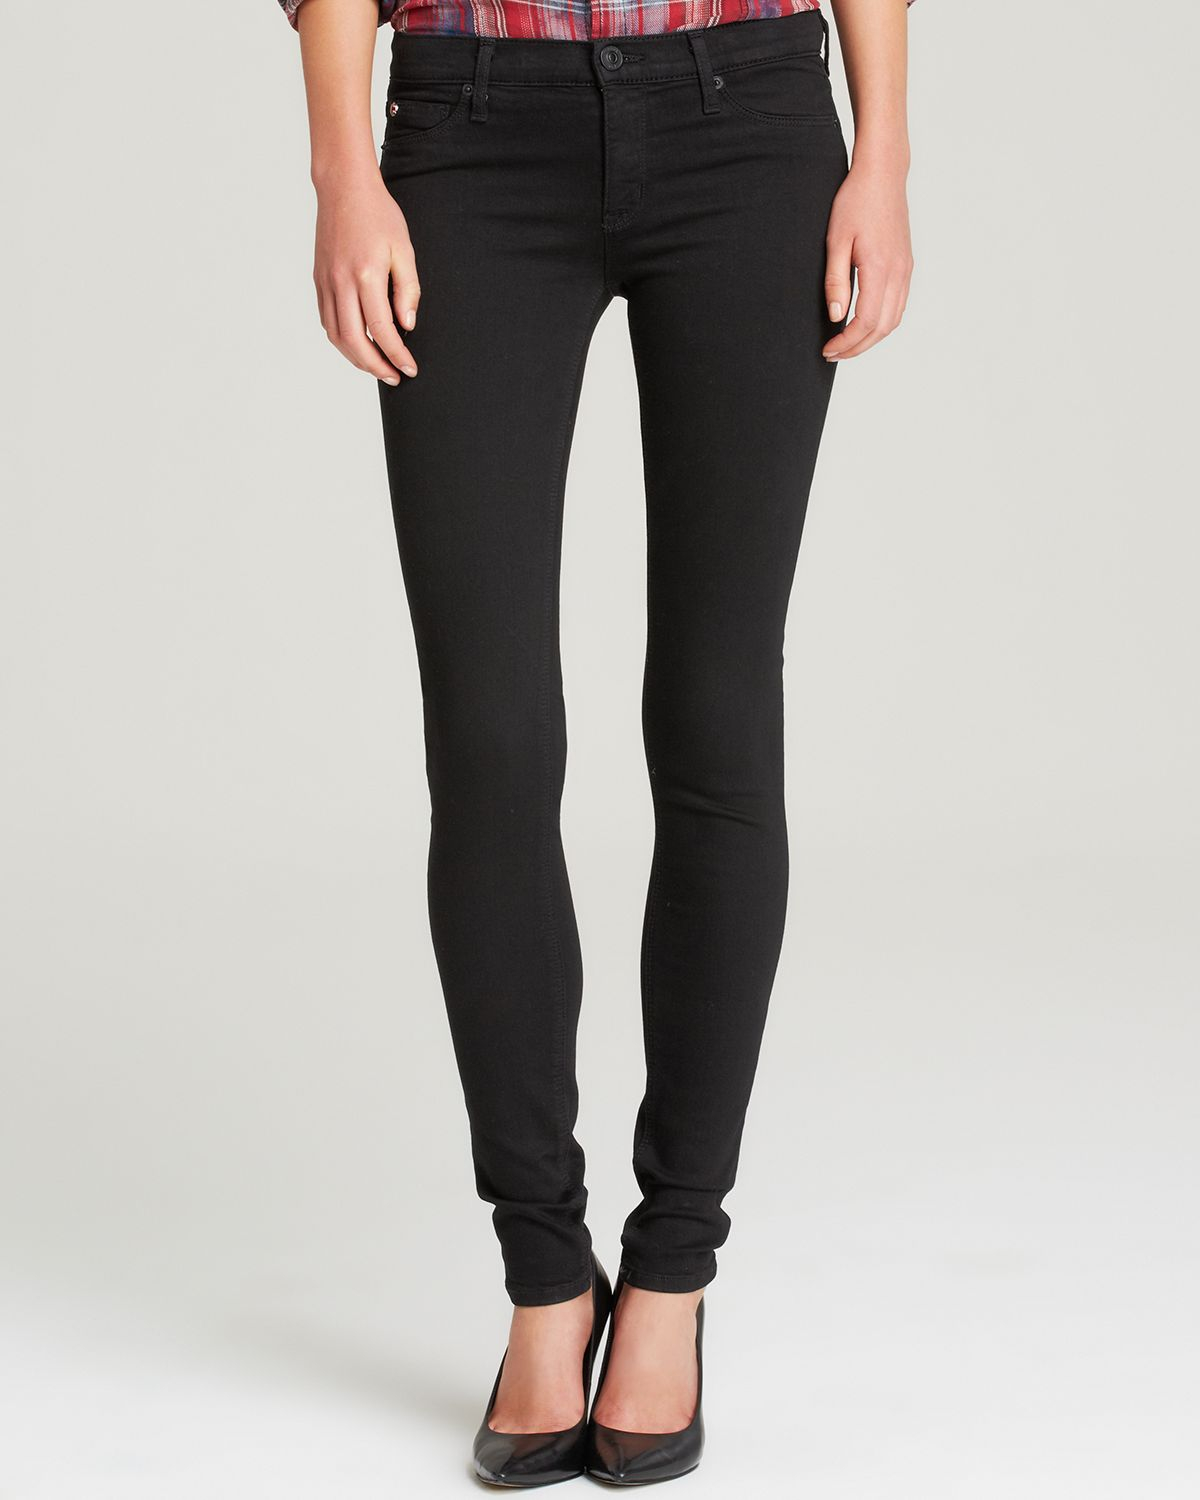 The Twiggy cut from Joe's Jeans boasts an ultra-slim stretch fit and extra-long inseam that put all eyes on you in a streamlined, jet-black wash.